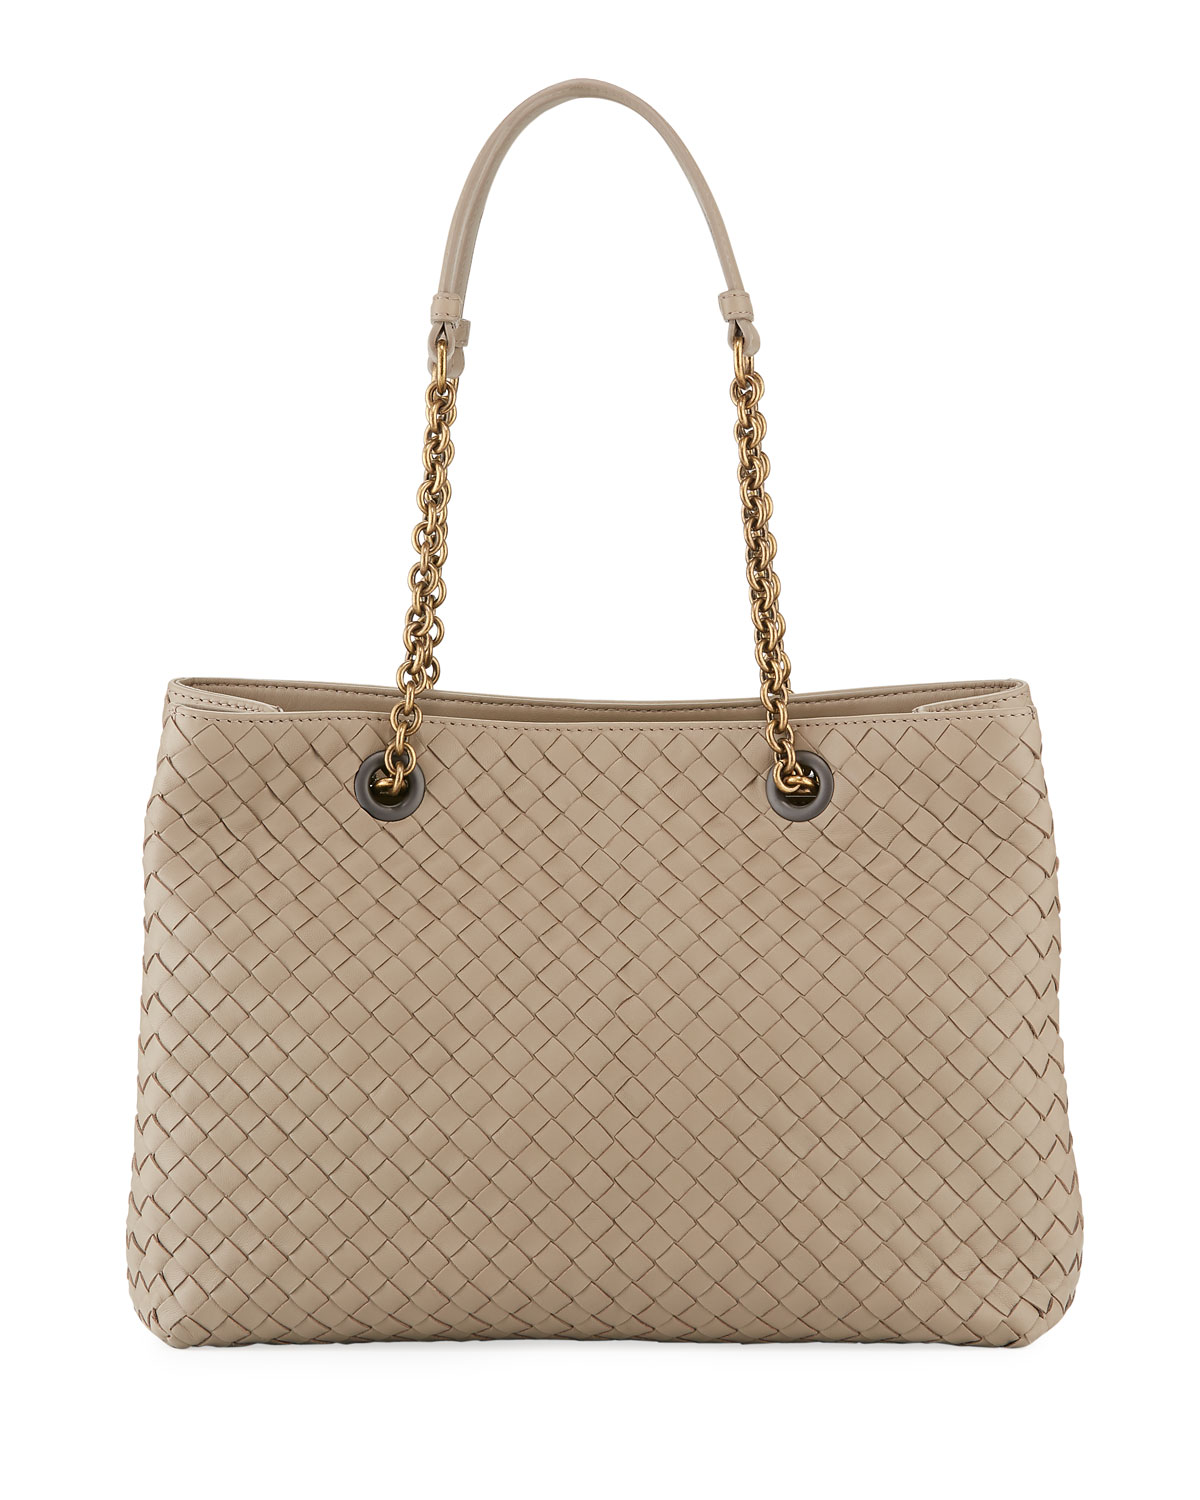 c6b6032af8ab Bottega Veneta Intrecciato Medium Double-Chain Tote Bag